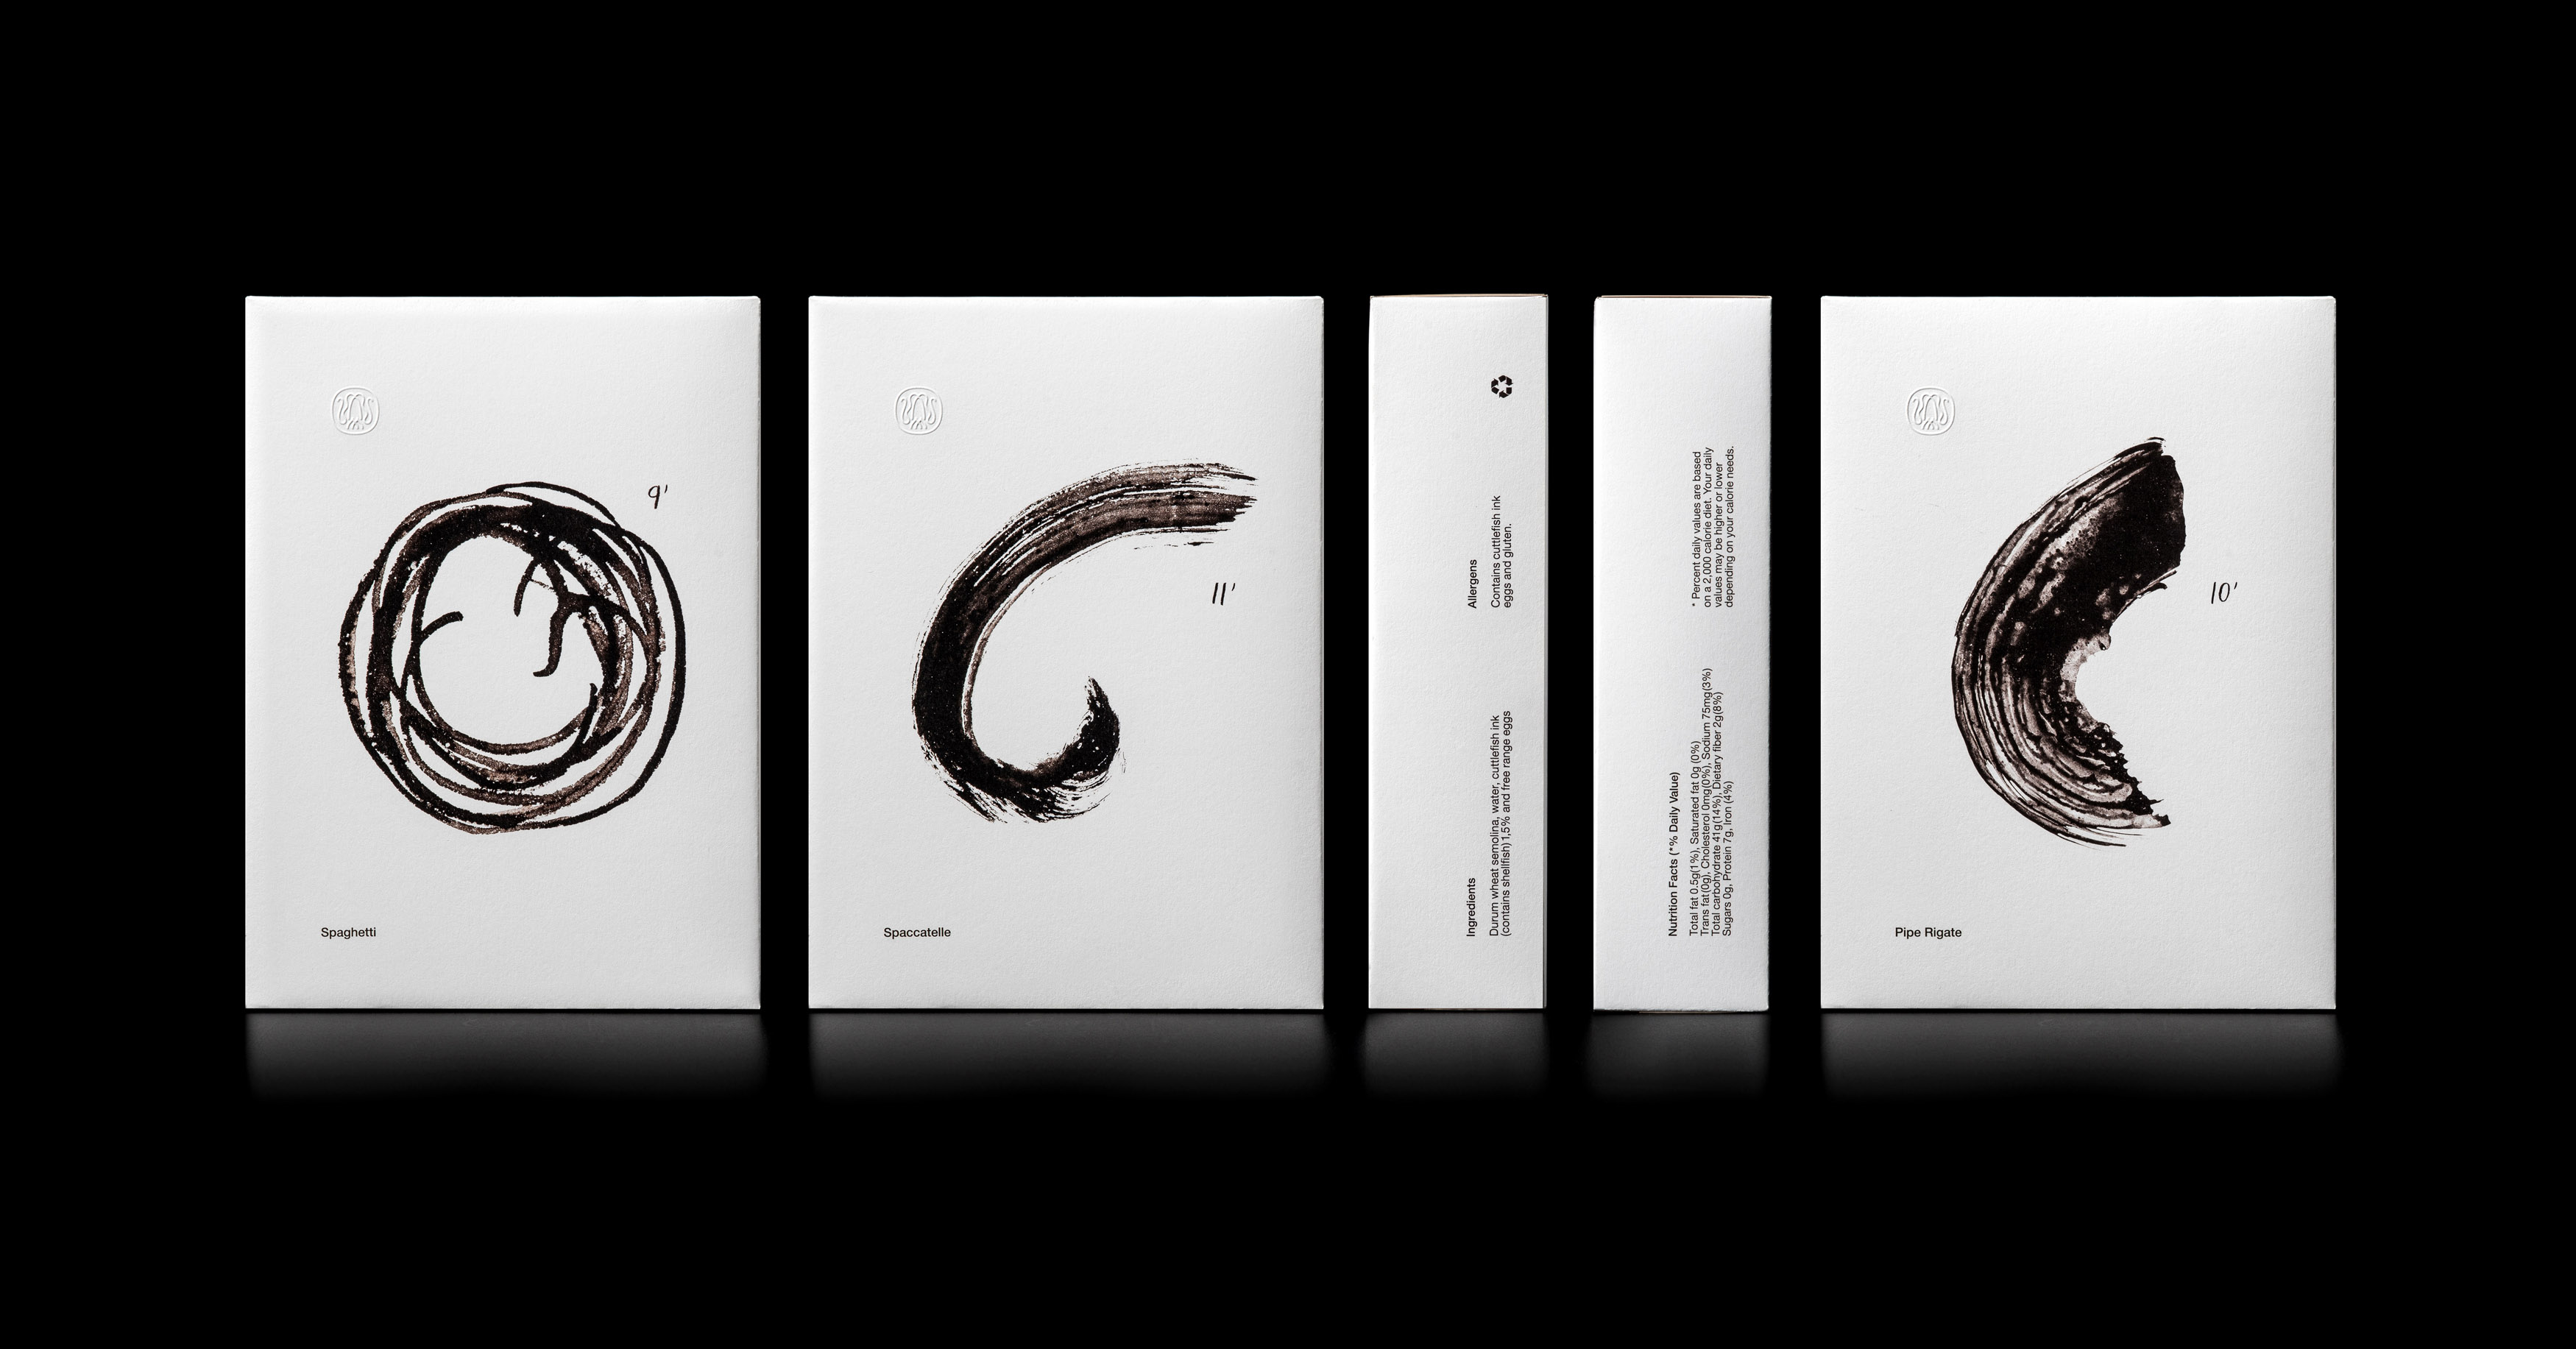 Artisanal Cuttlefish Ink Pasta Sepia Packaging Design Created by Loukas Chondros